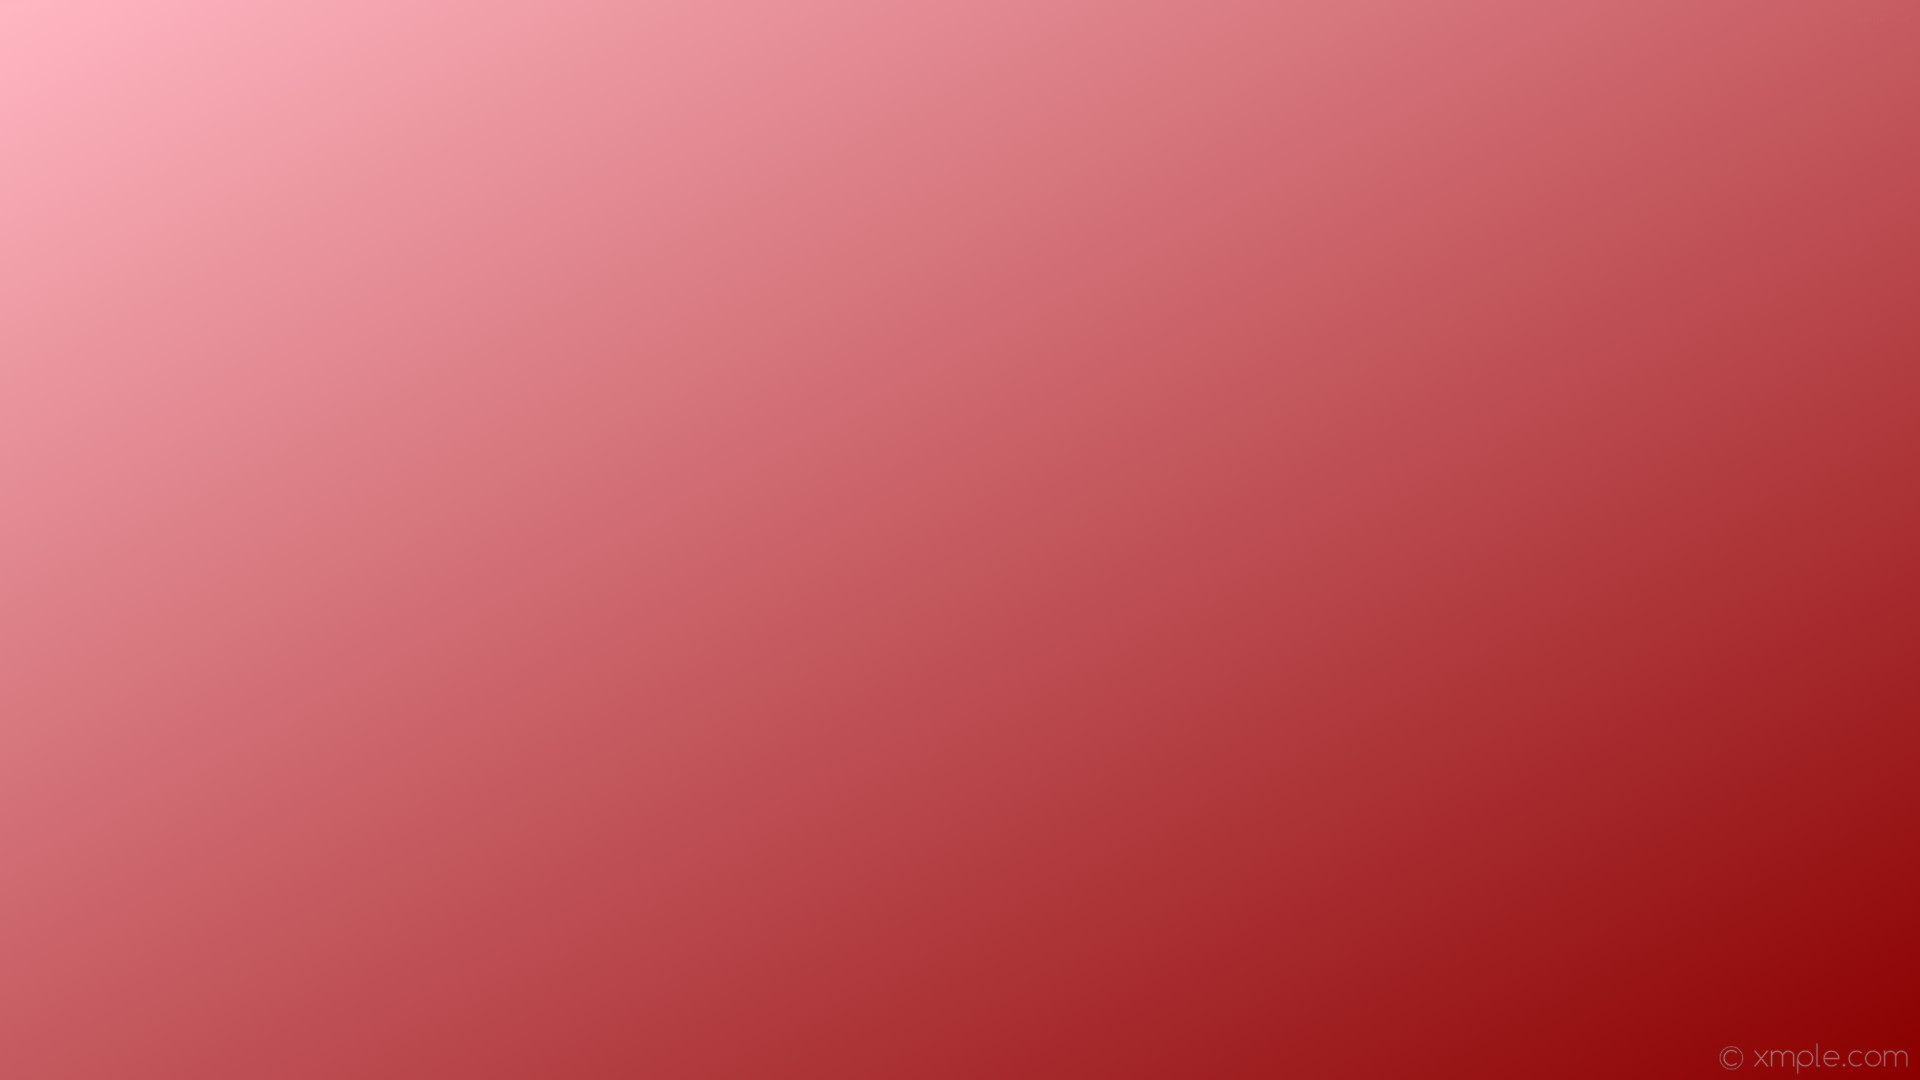 red and pink wallpaper 75 images